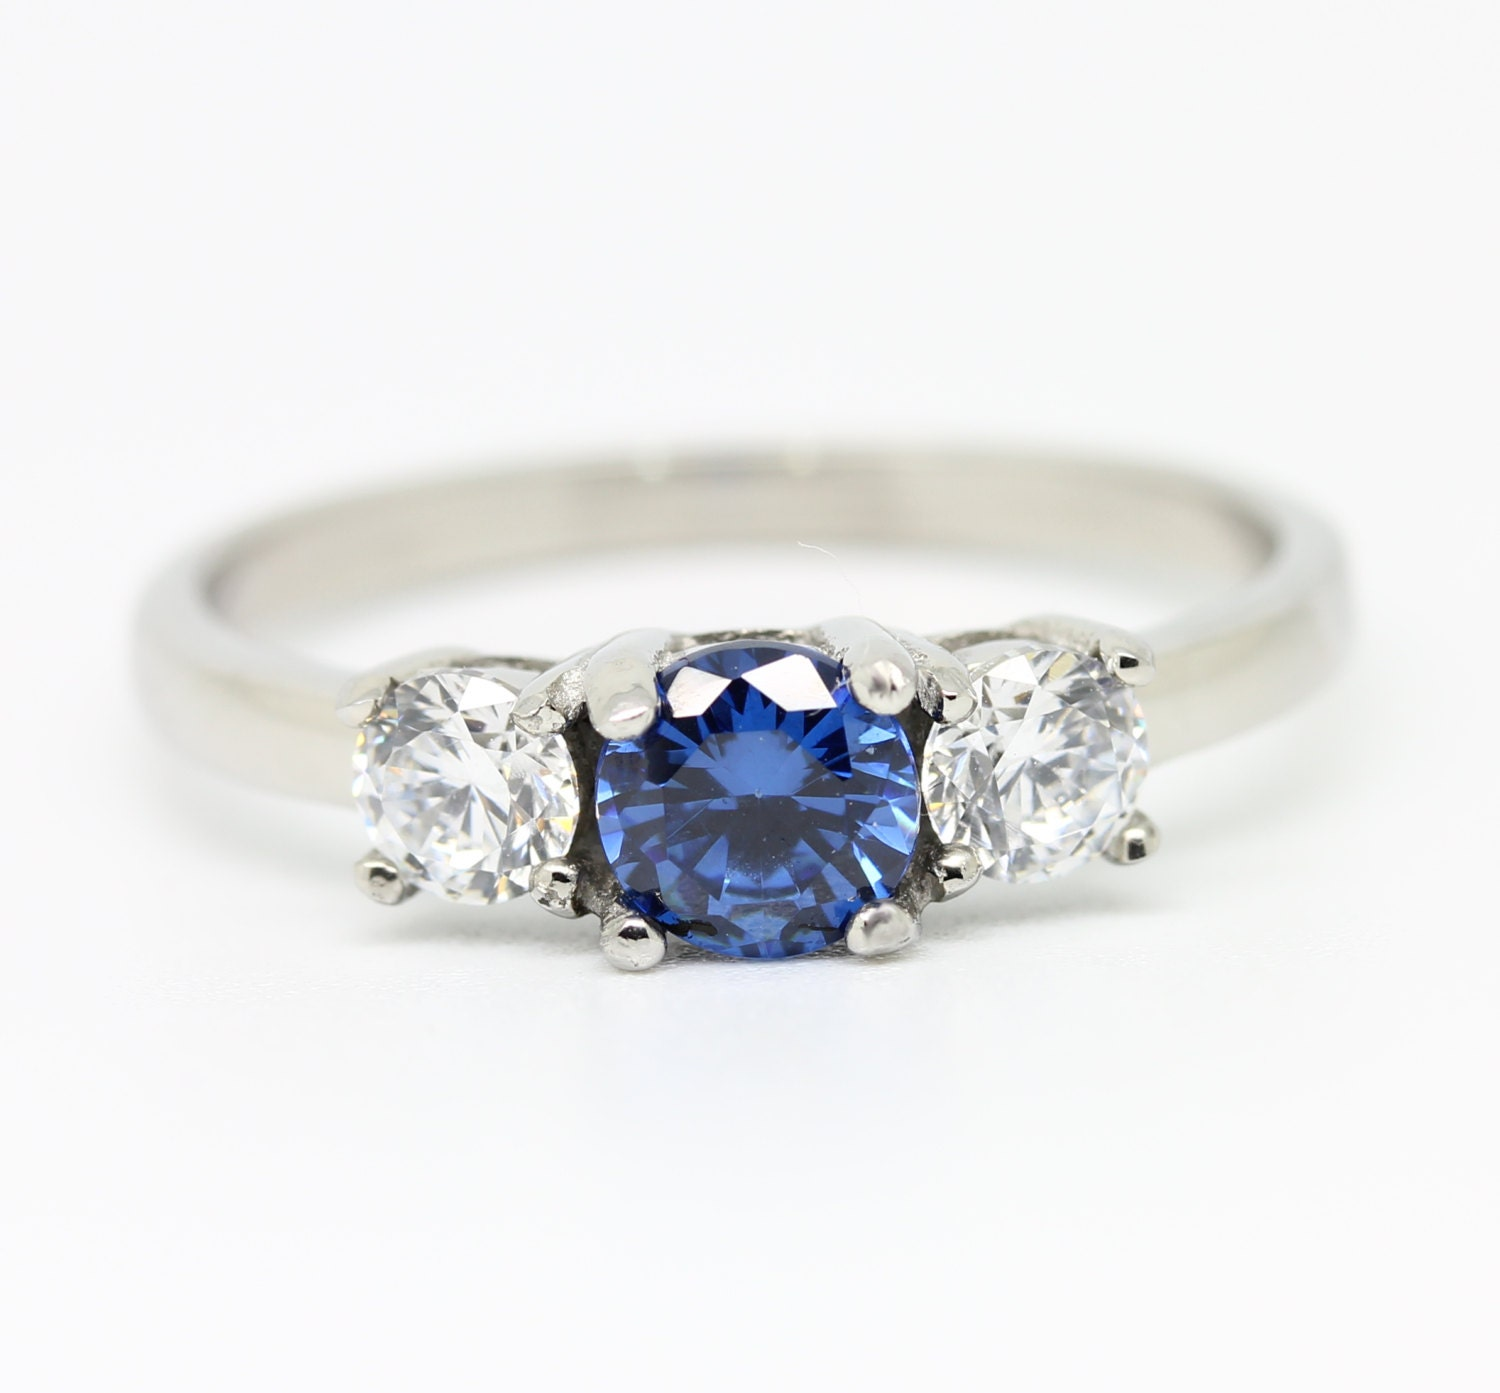 1ct genuine london blue topaz and white sapphire Trilogy ring  Available in Sterling silver or titanium  engagement ring  wedding ring